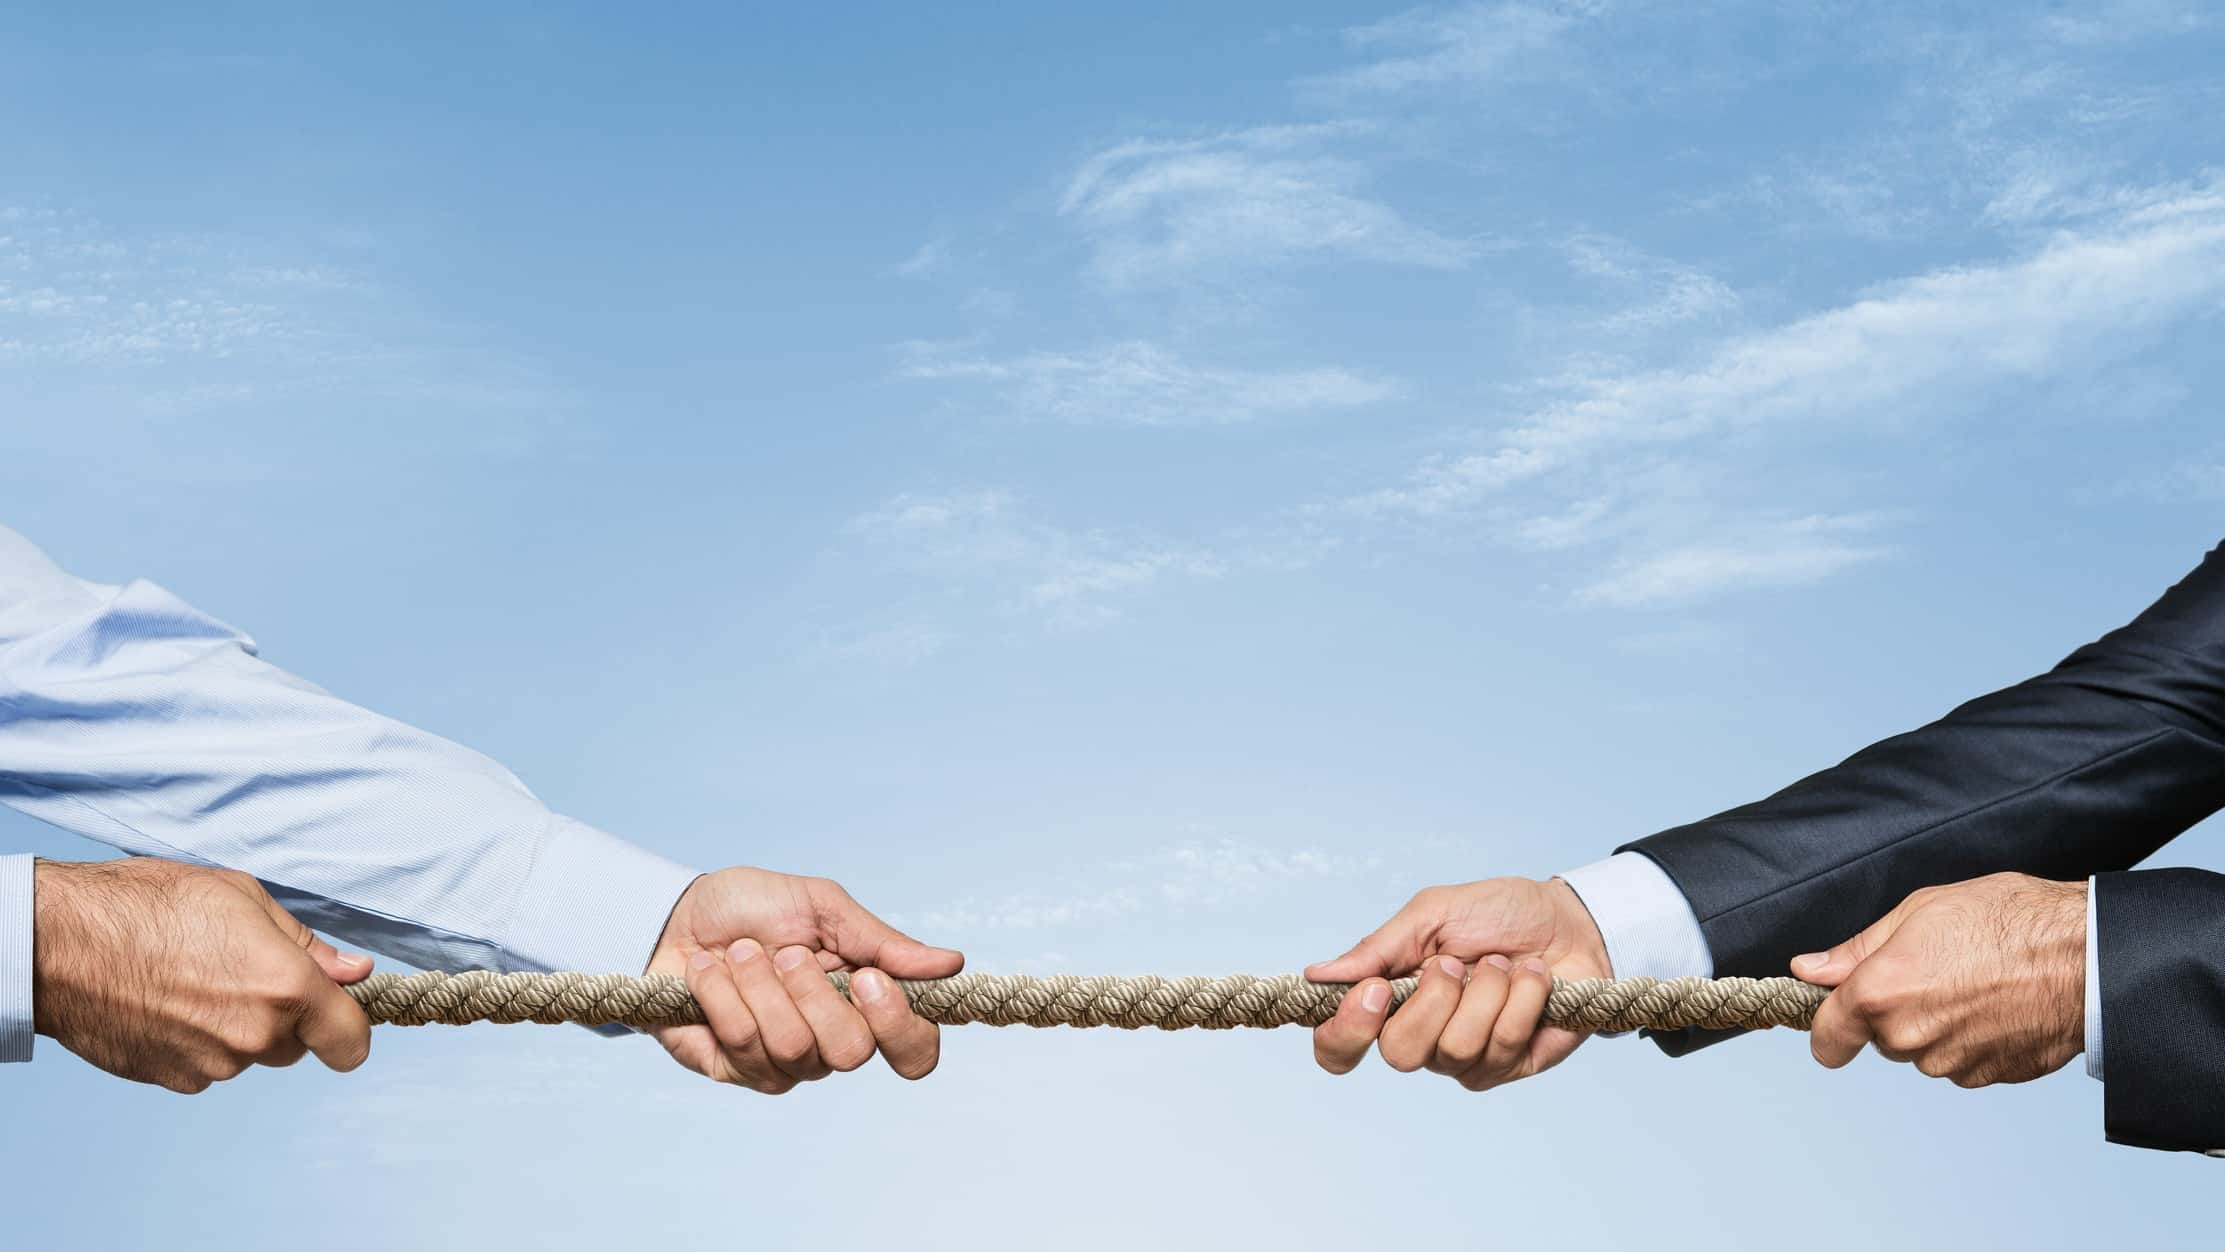 asx shares asset sales and mergers and acquisitions represented by two business men playing tug of war with rope